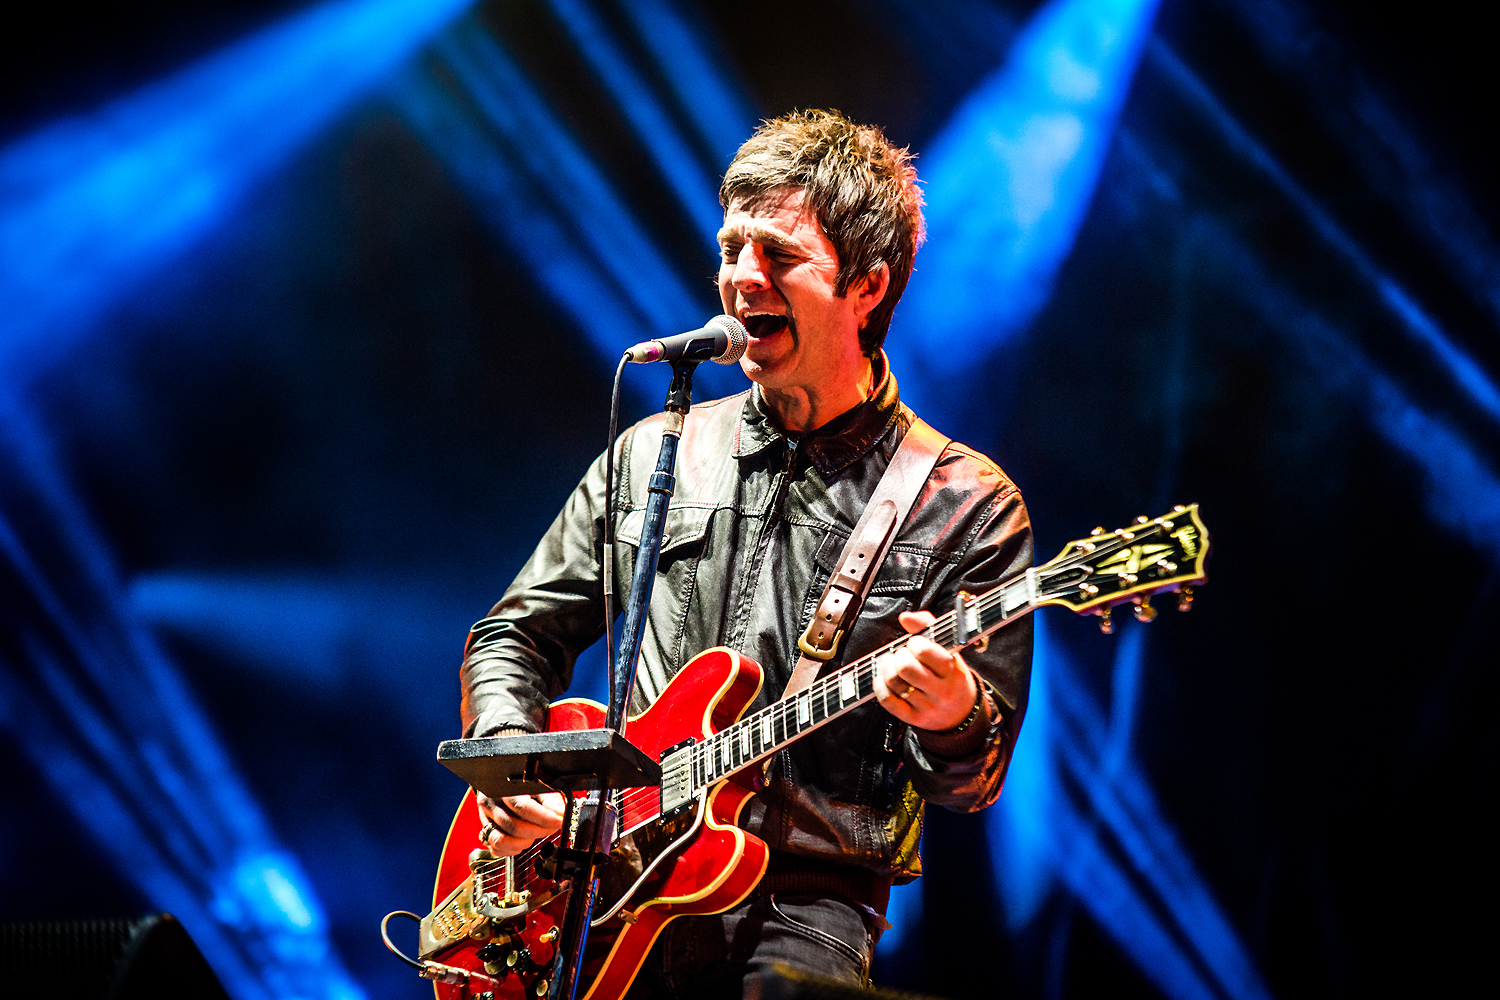 BKS 704 - Noel Gallagher's High Flying Birds